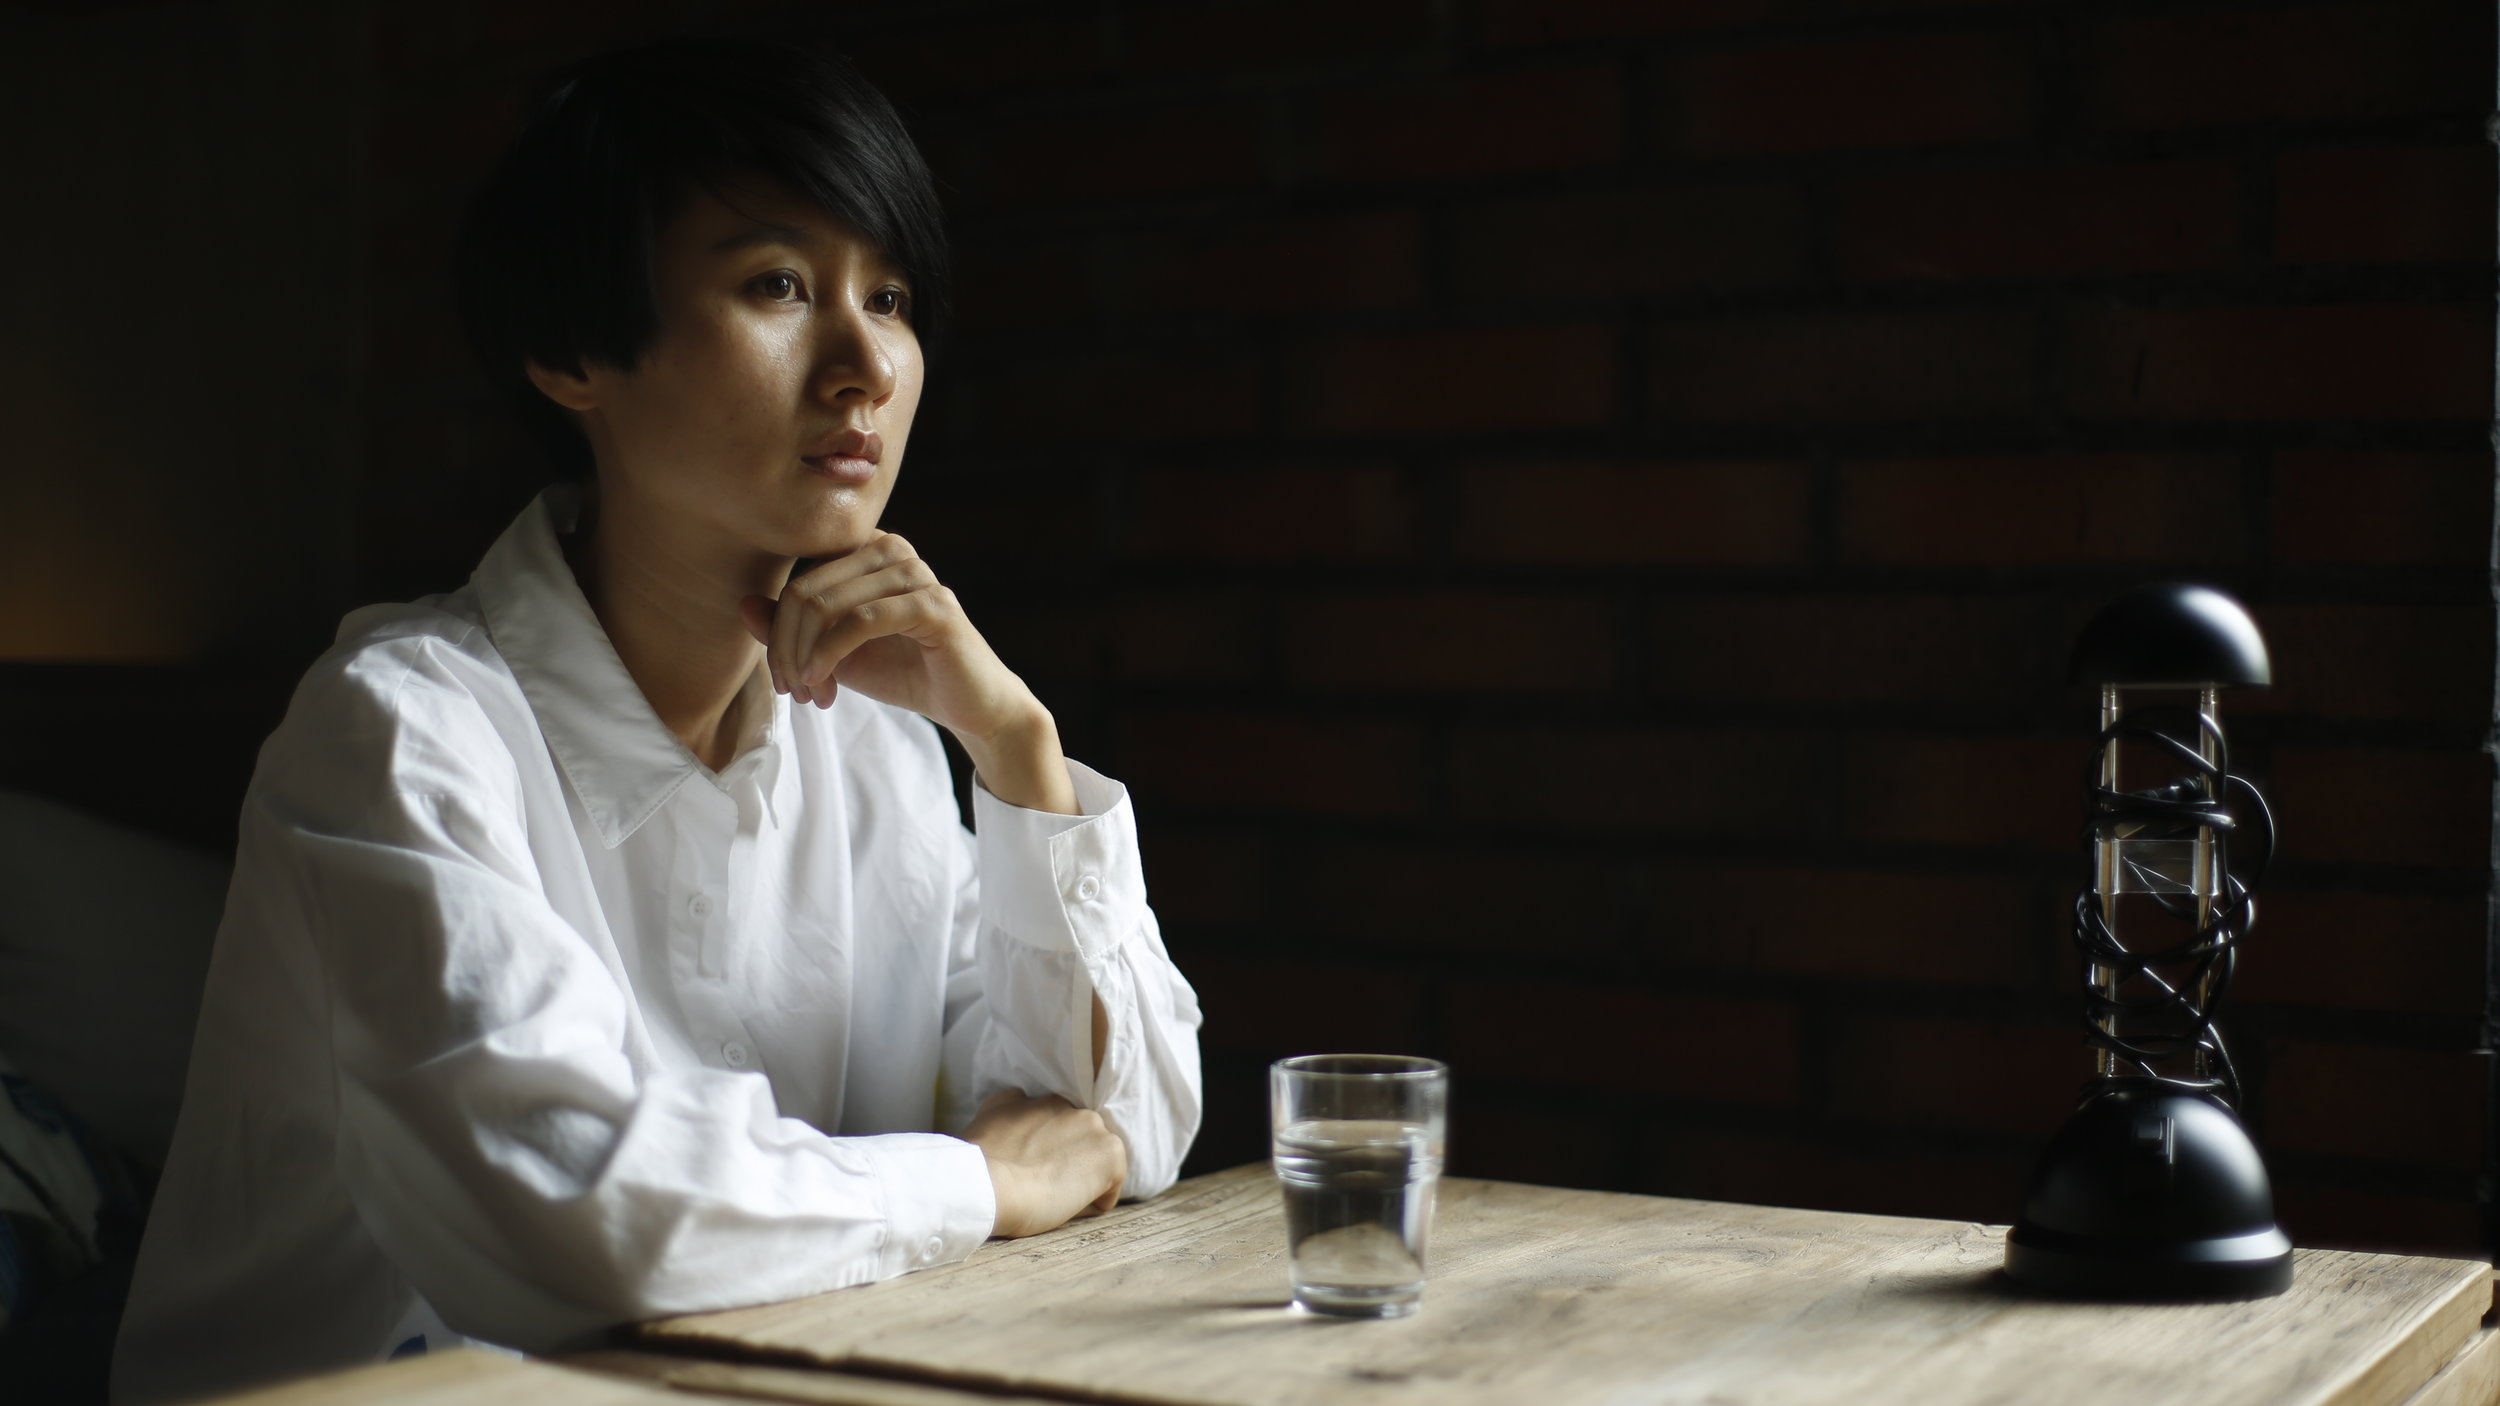 A Portrait of a Life    In 2002, Xu Wenlin, Liu Wenli, and Zhou Xiaohong took a train from Inner Mongolia to Beijing in order to fulfill the actress' dream. Ten years later, between 2012 and 2017, her life and her dream constantly changed....   Read More